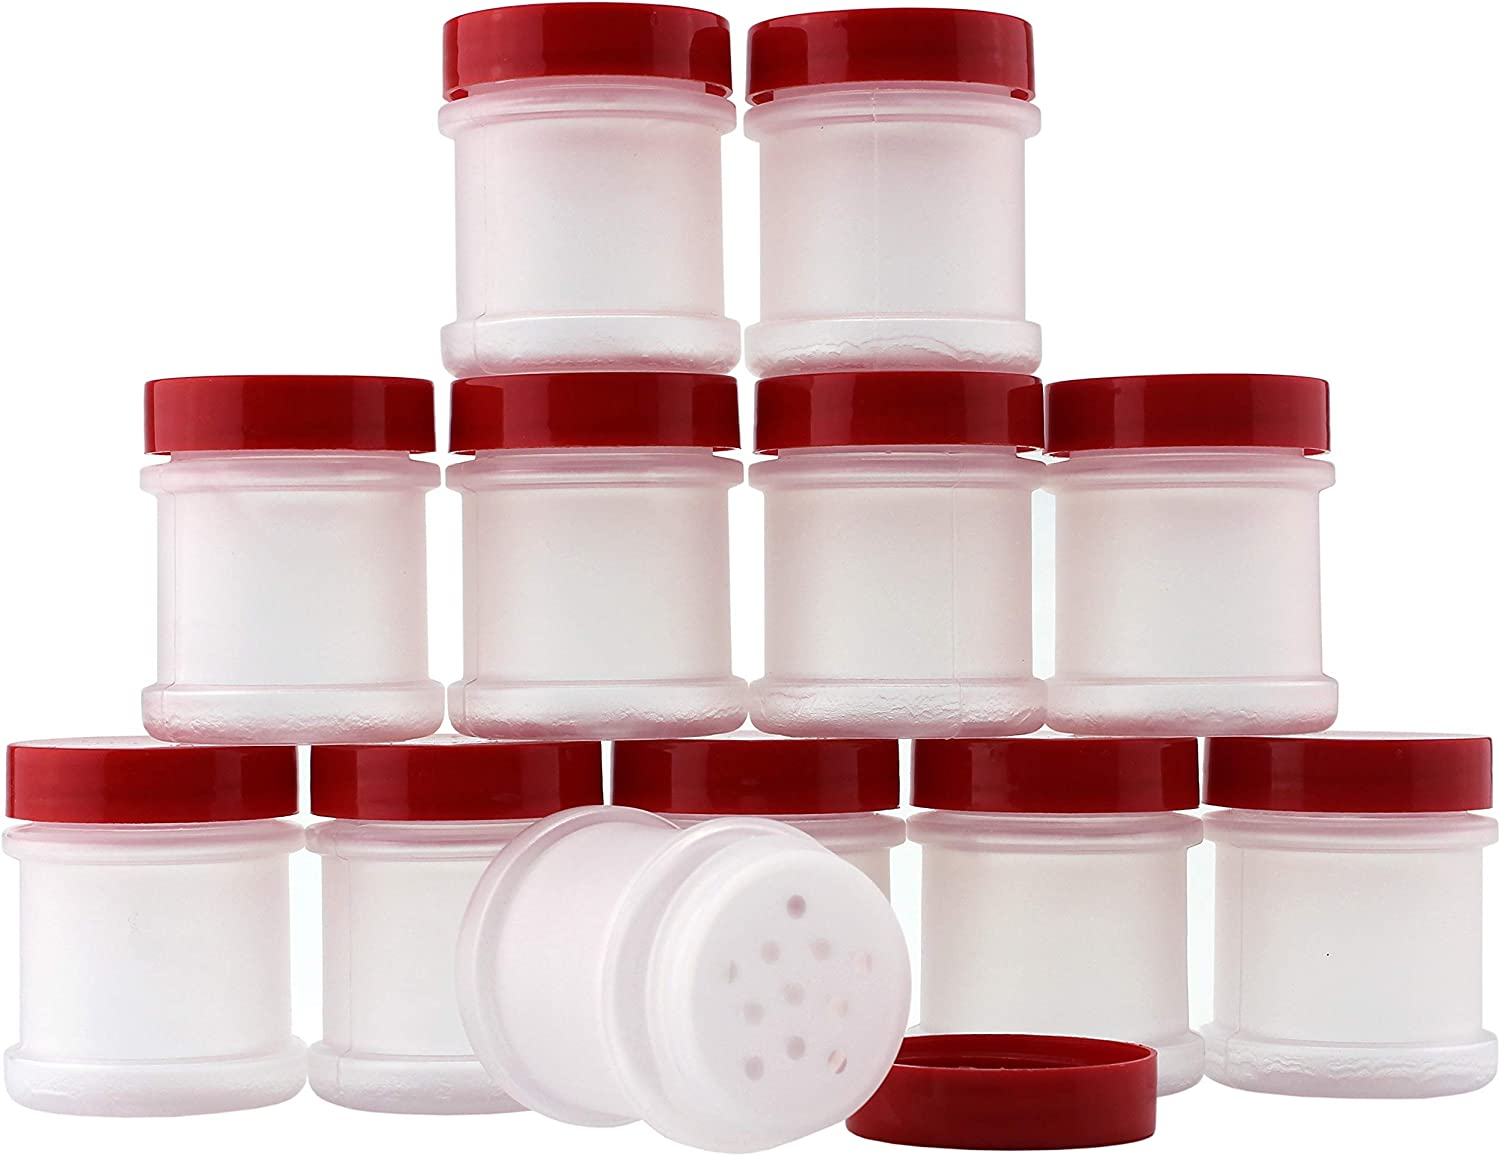 Mini Plastic Spice Jars w/Sifters (12-Pack); 2 Tablespoon Capacity (1 Fluid Ounce) Spice Bottles Great for Travel, Glitter, Gifts, Favors, Etc.